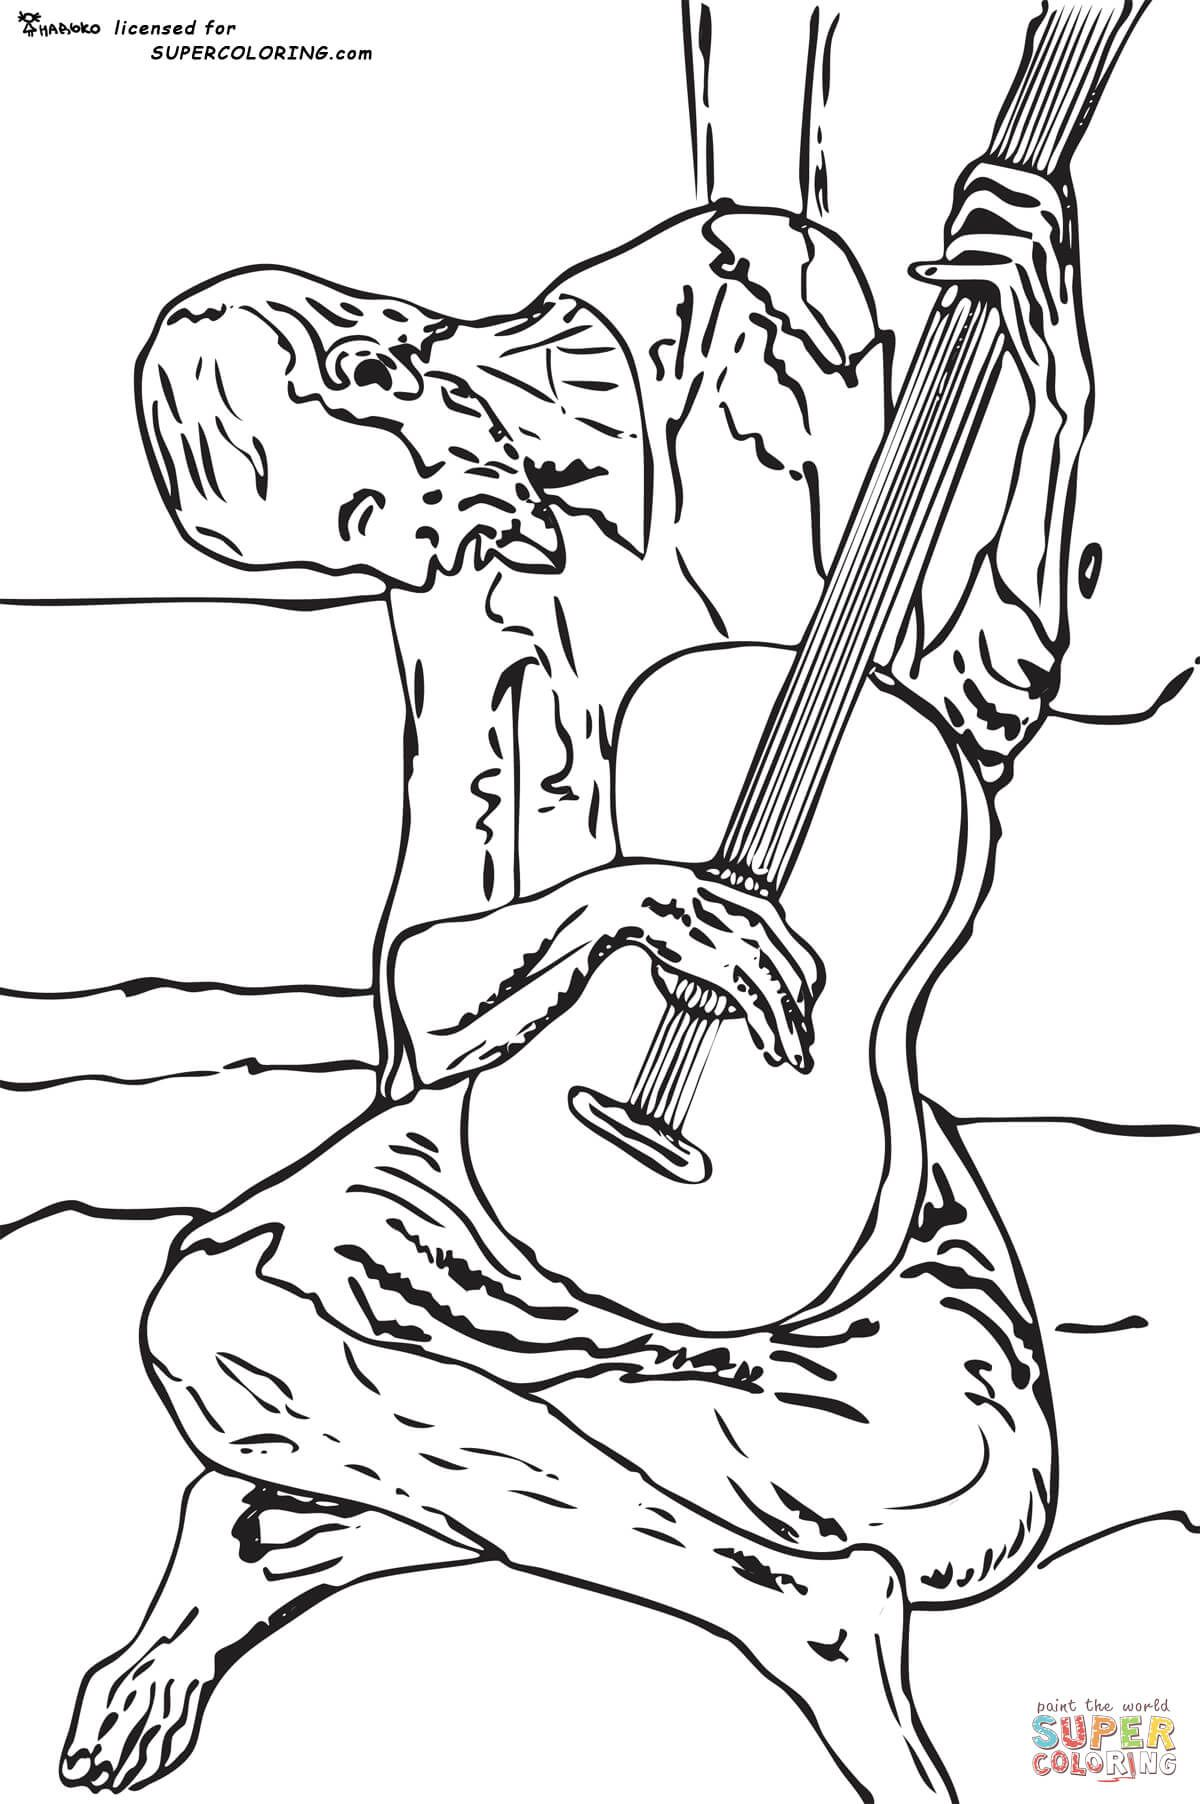 Blue Guitar By Pablo Picasso Coloring Page Free Printable Coloring Pages Pablo Picasso Dingen Om Te Tekenen Picasso